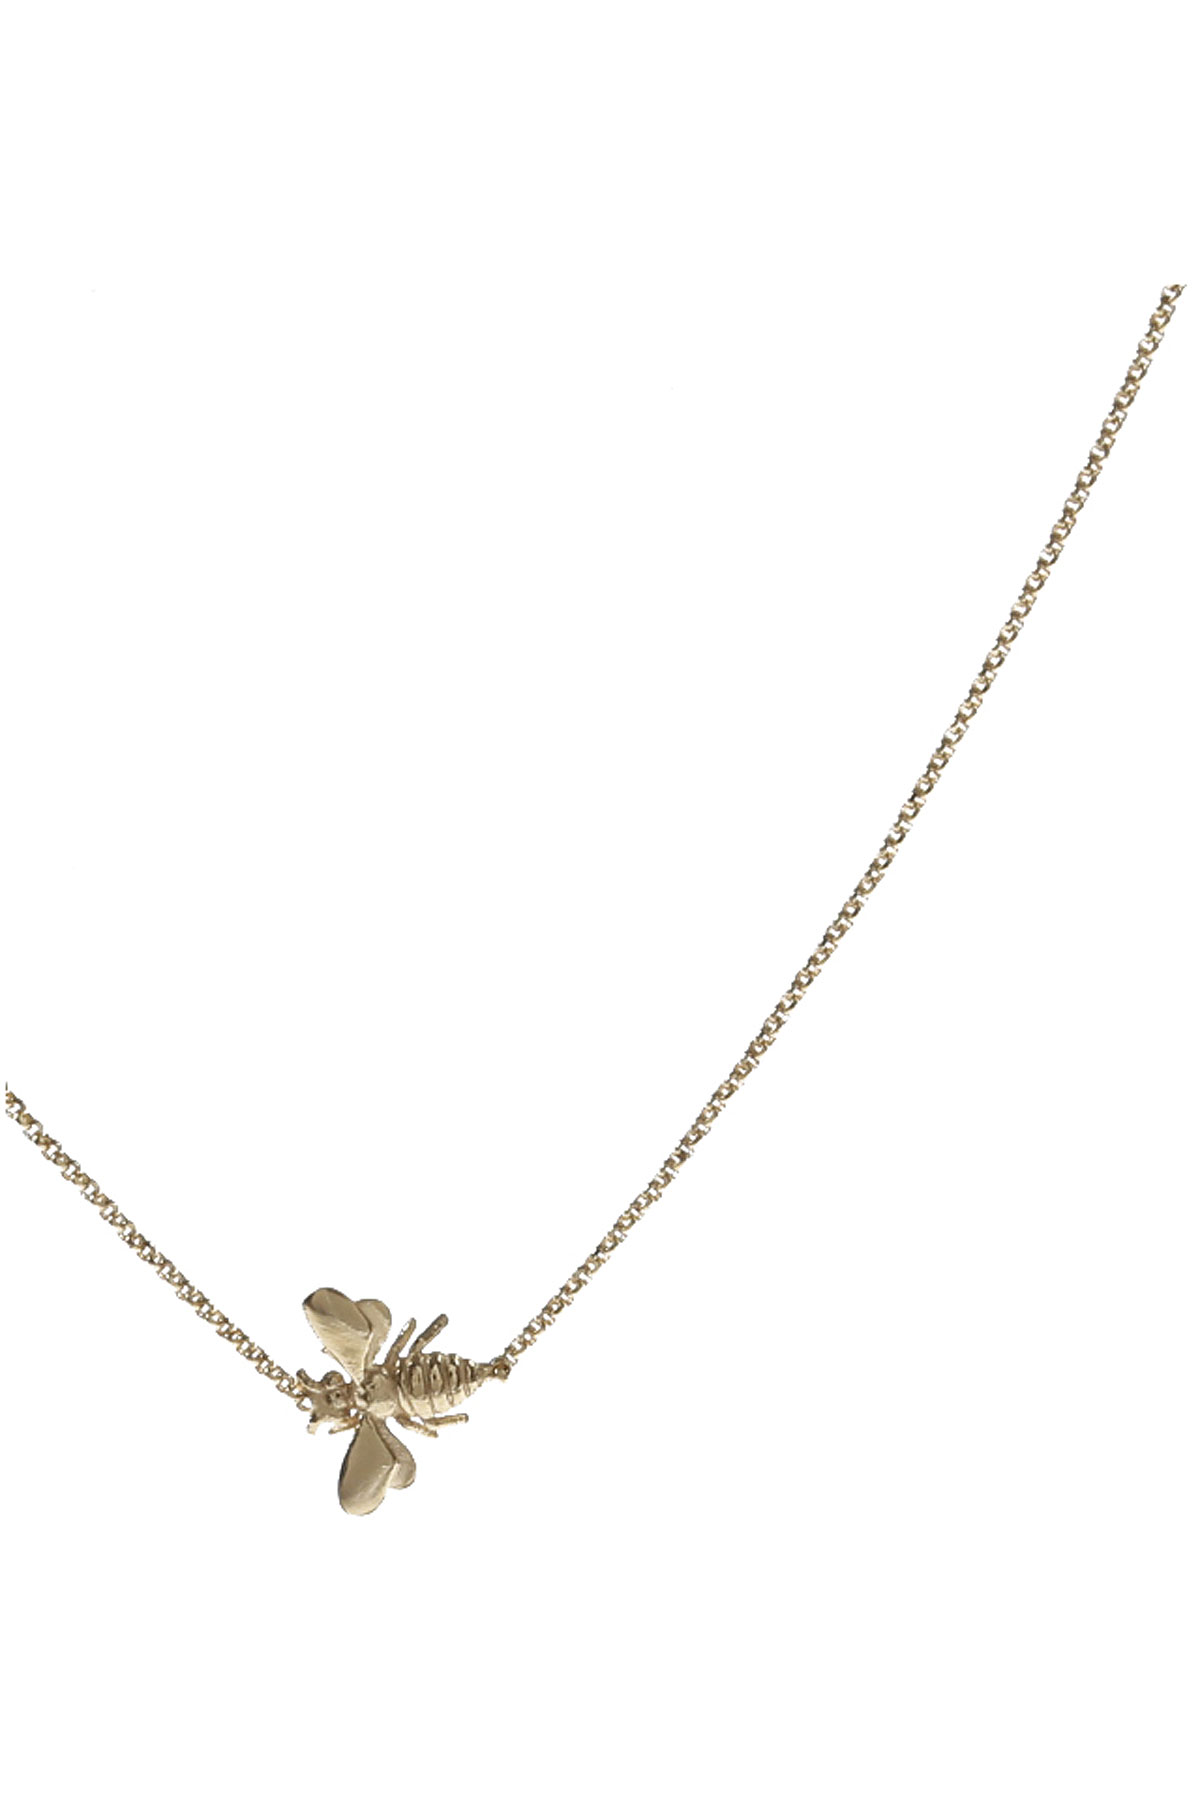 Francesca Angelone Necklaces On Sale, Gold, Silver 925, 2019